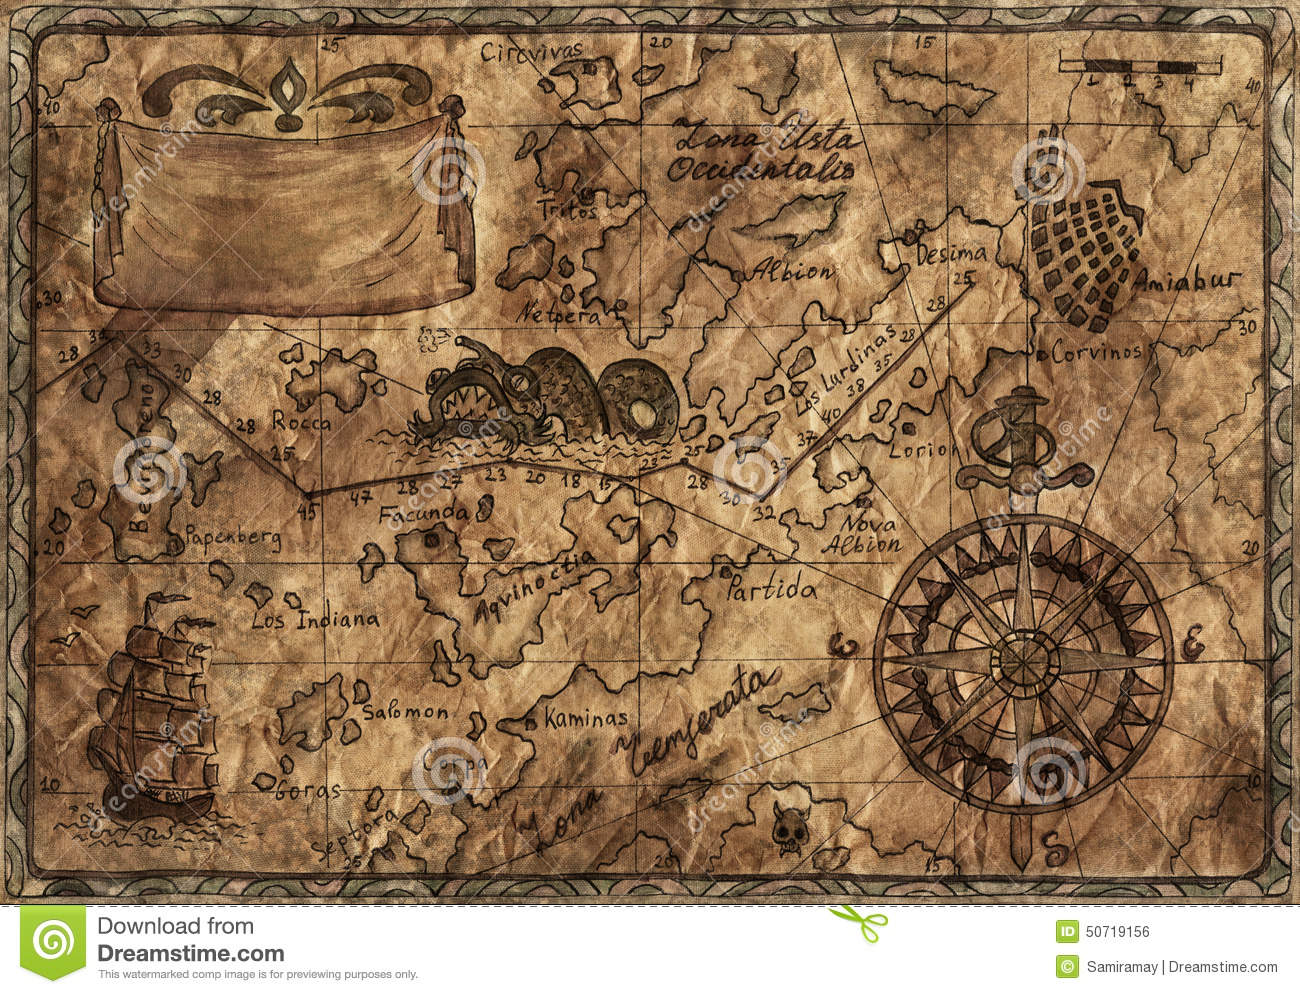 Pirate World Map.Old Pirate Map With Desaturated Effect Stock Illustration